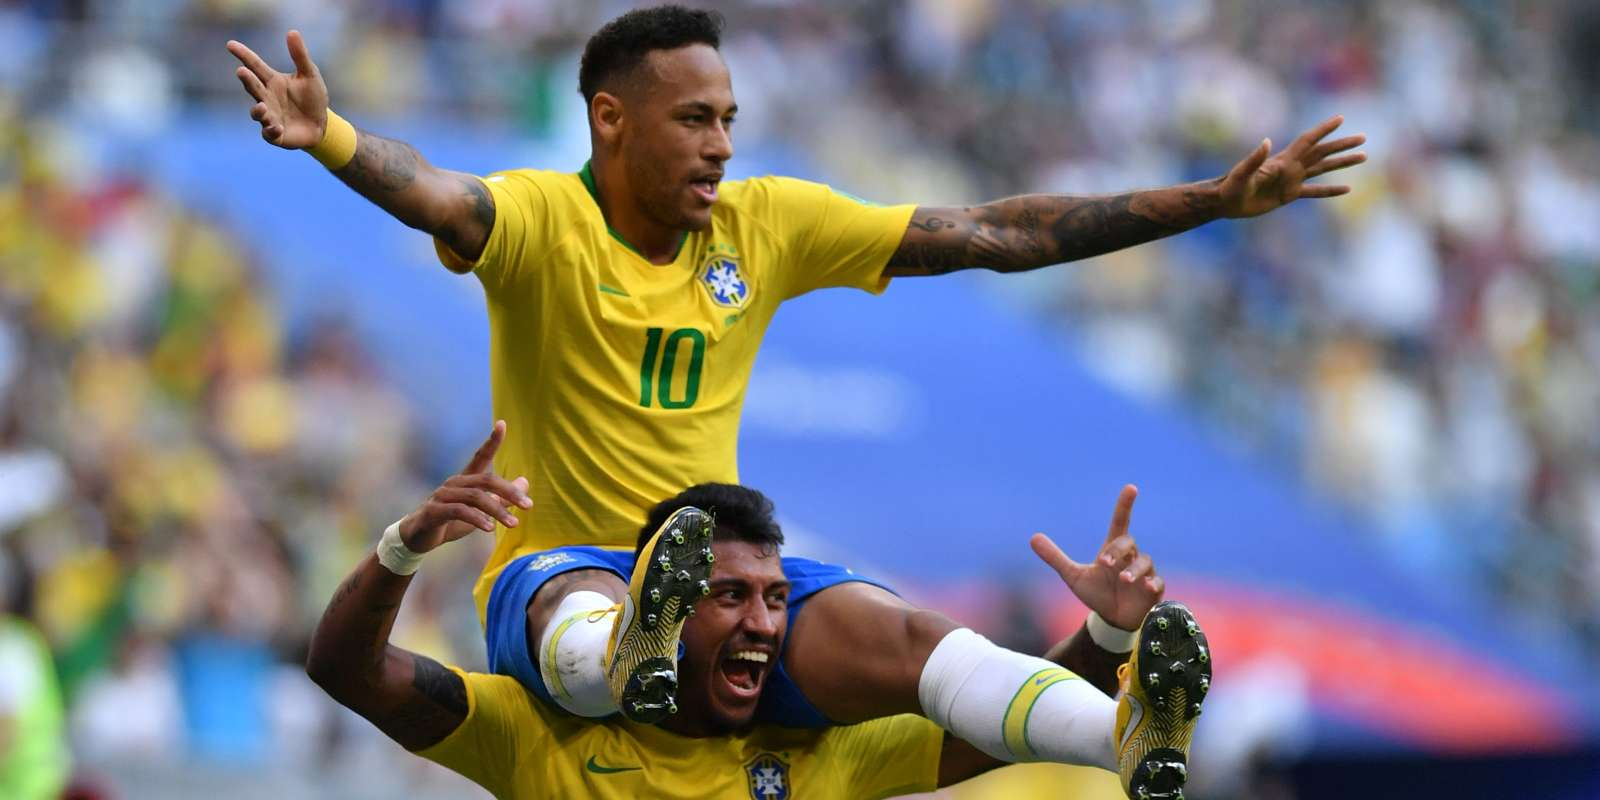 TOPSHOT - Brazil's forward Neymar celebrates with Brazil's midfielder Paulinho after scoring the opening goal during the Russia 2018 World Cup round of 16 football match between Brazil and Mexico at the Samara Arena in Samara on July 2, 2018. RESTRICTED TO EDITORIAL USE - NO MOBILE PUSH ALERTS/DOWNLOADS / AFP / Fabrice COFFRINI / RESTRICTED TO EDITORIAL USE - NO MOBILE PUSH ALERTS/DOWNLOADS